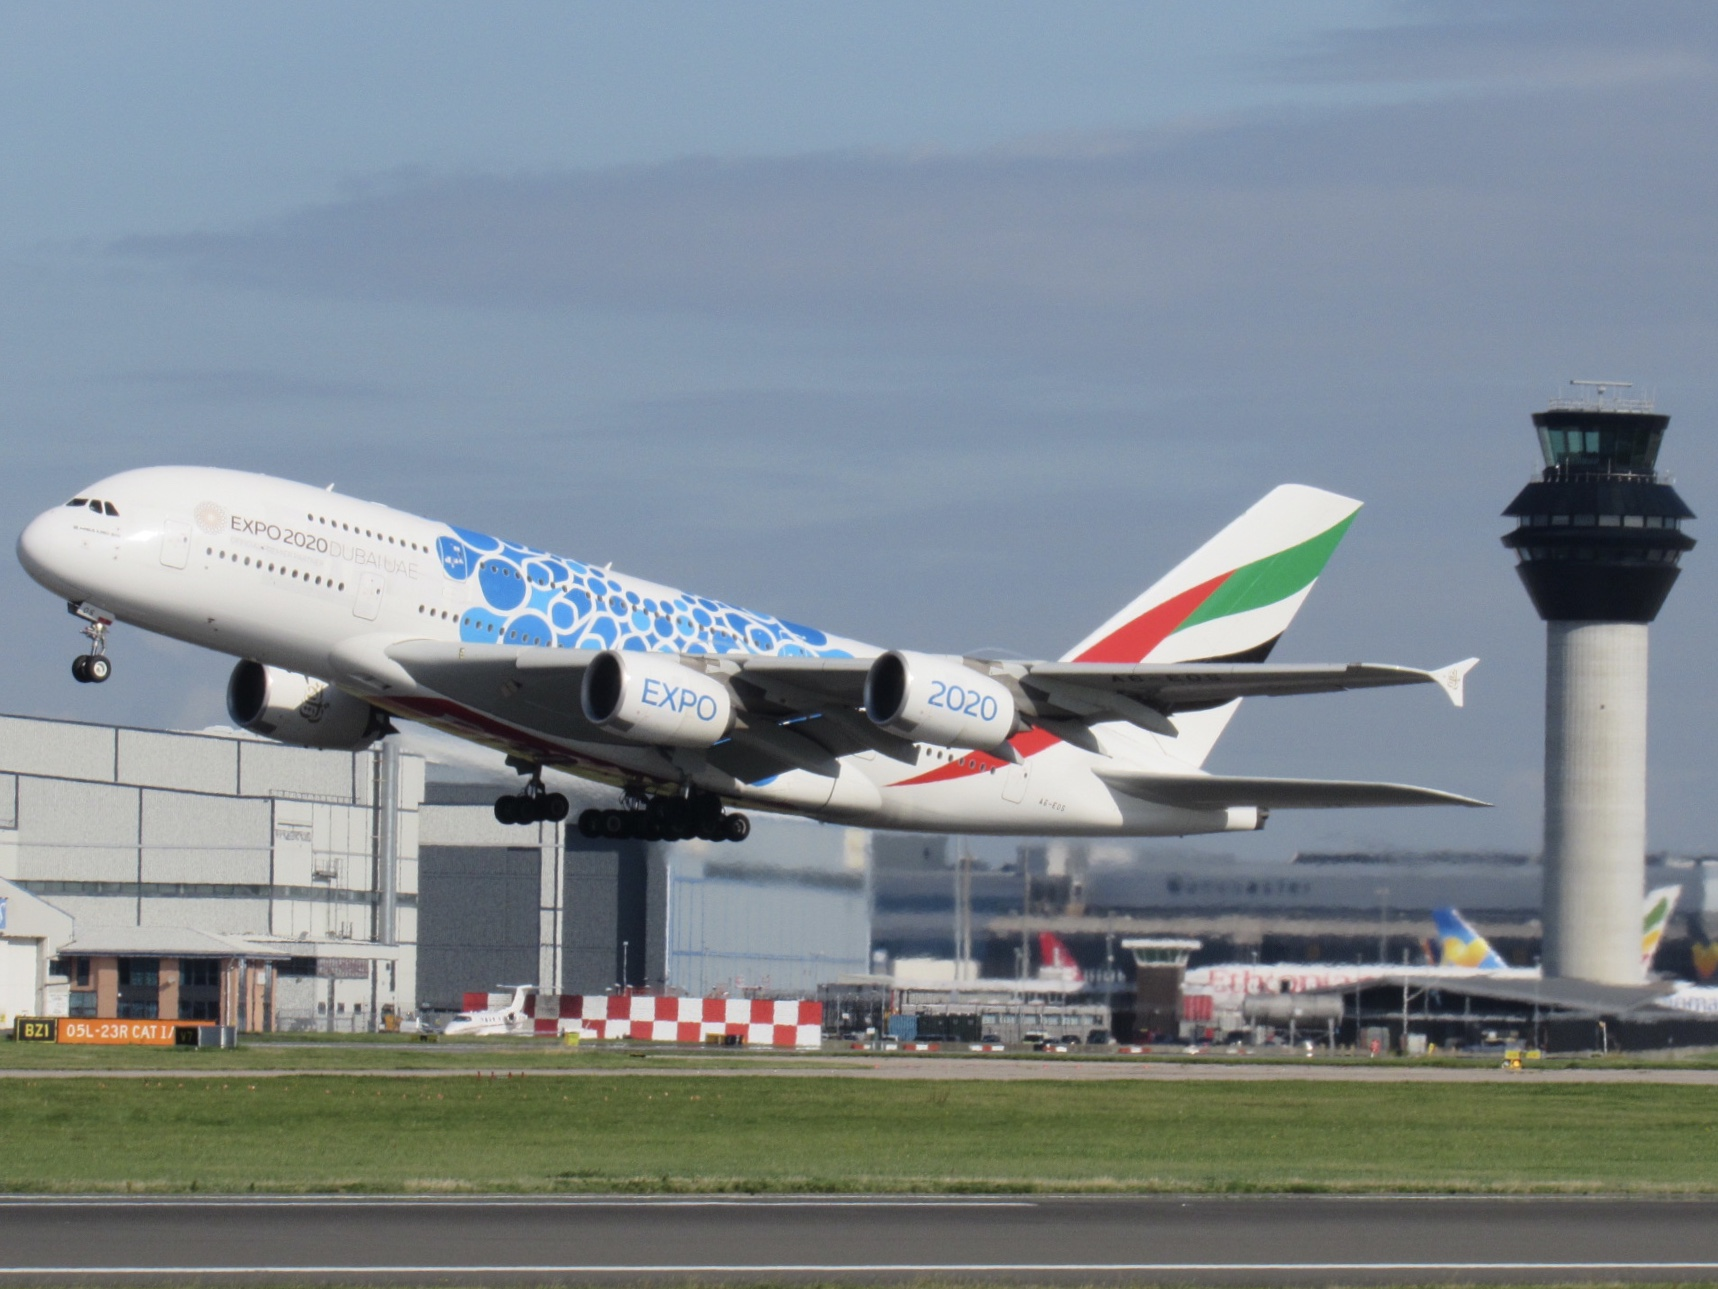 A super image from Lewis Rowland of the Emirates A380 A6-EOS in the Blue Expo 2020 Livery departing Manchester today (8th September) on the EK022 to Dubai.